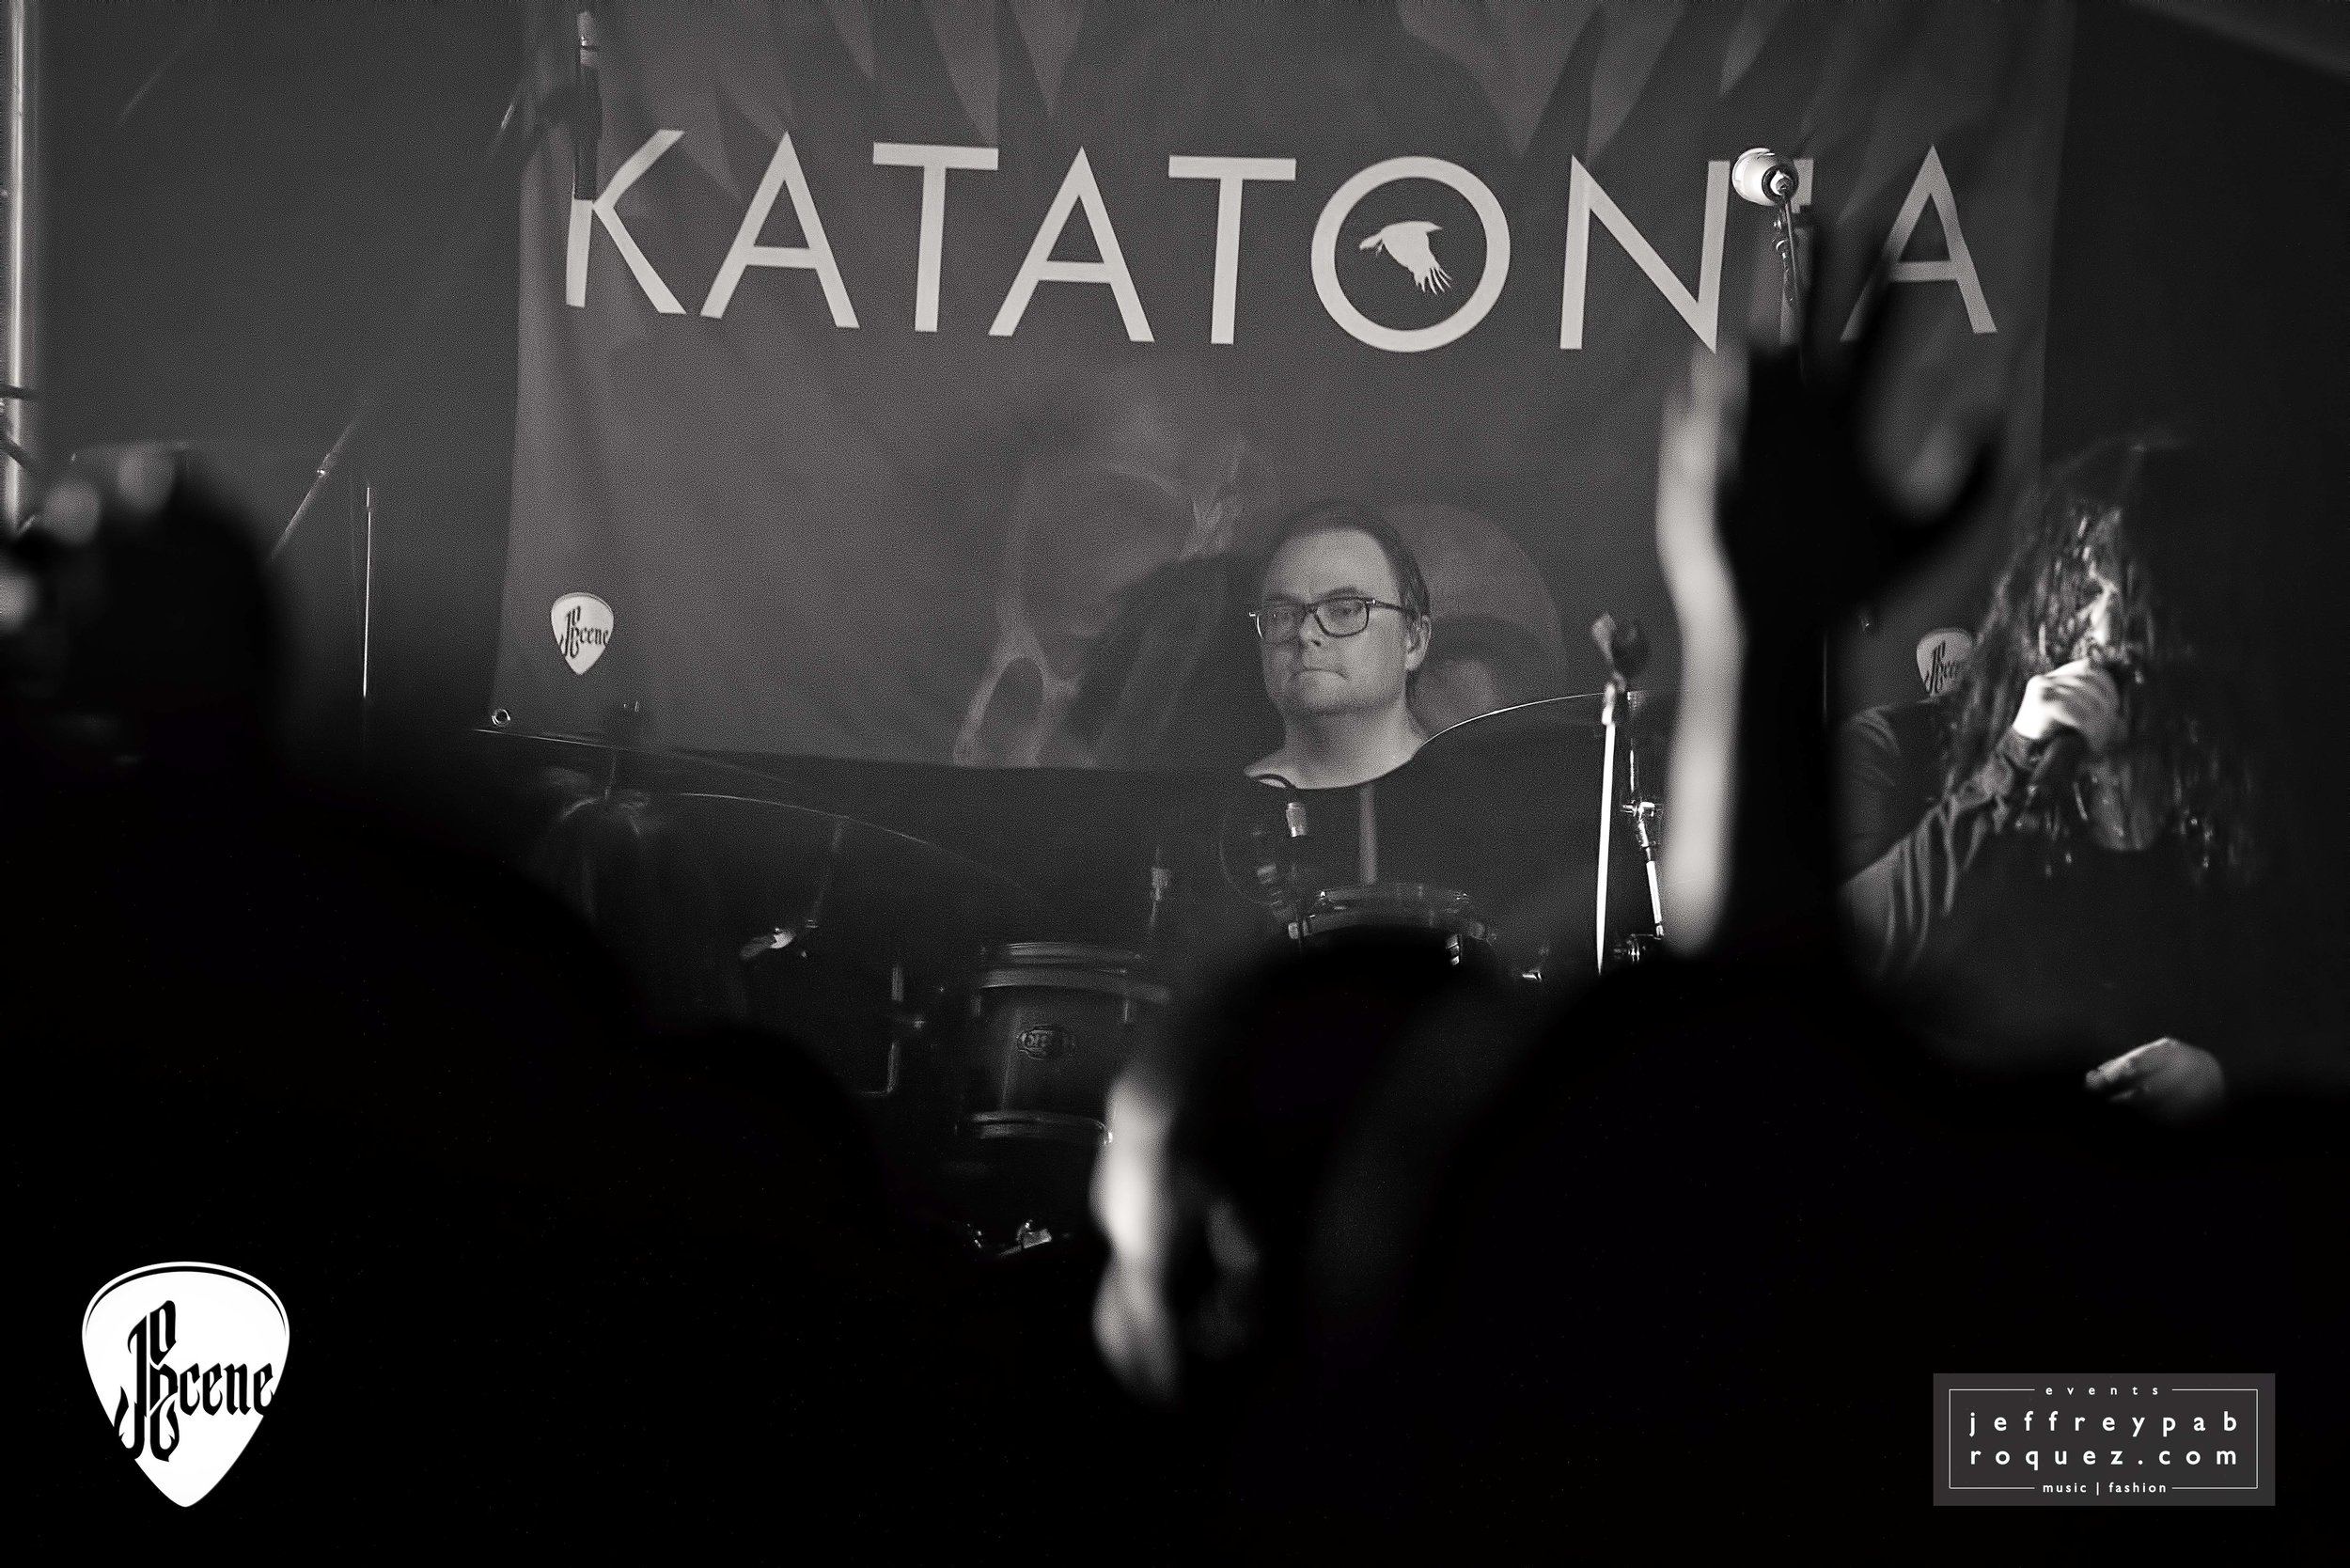 Katatonia_20170106_0135 copy.jpg